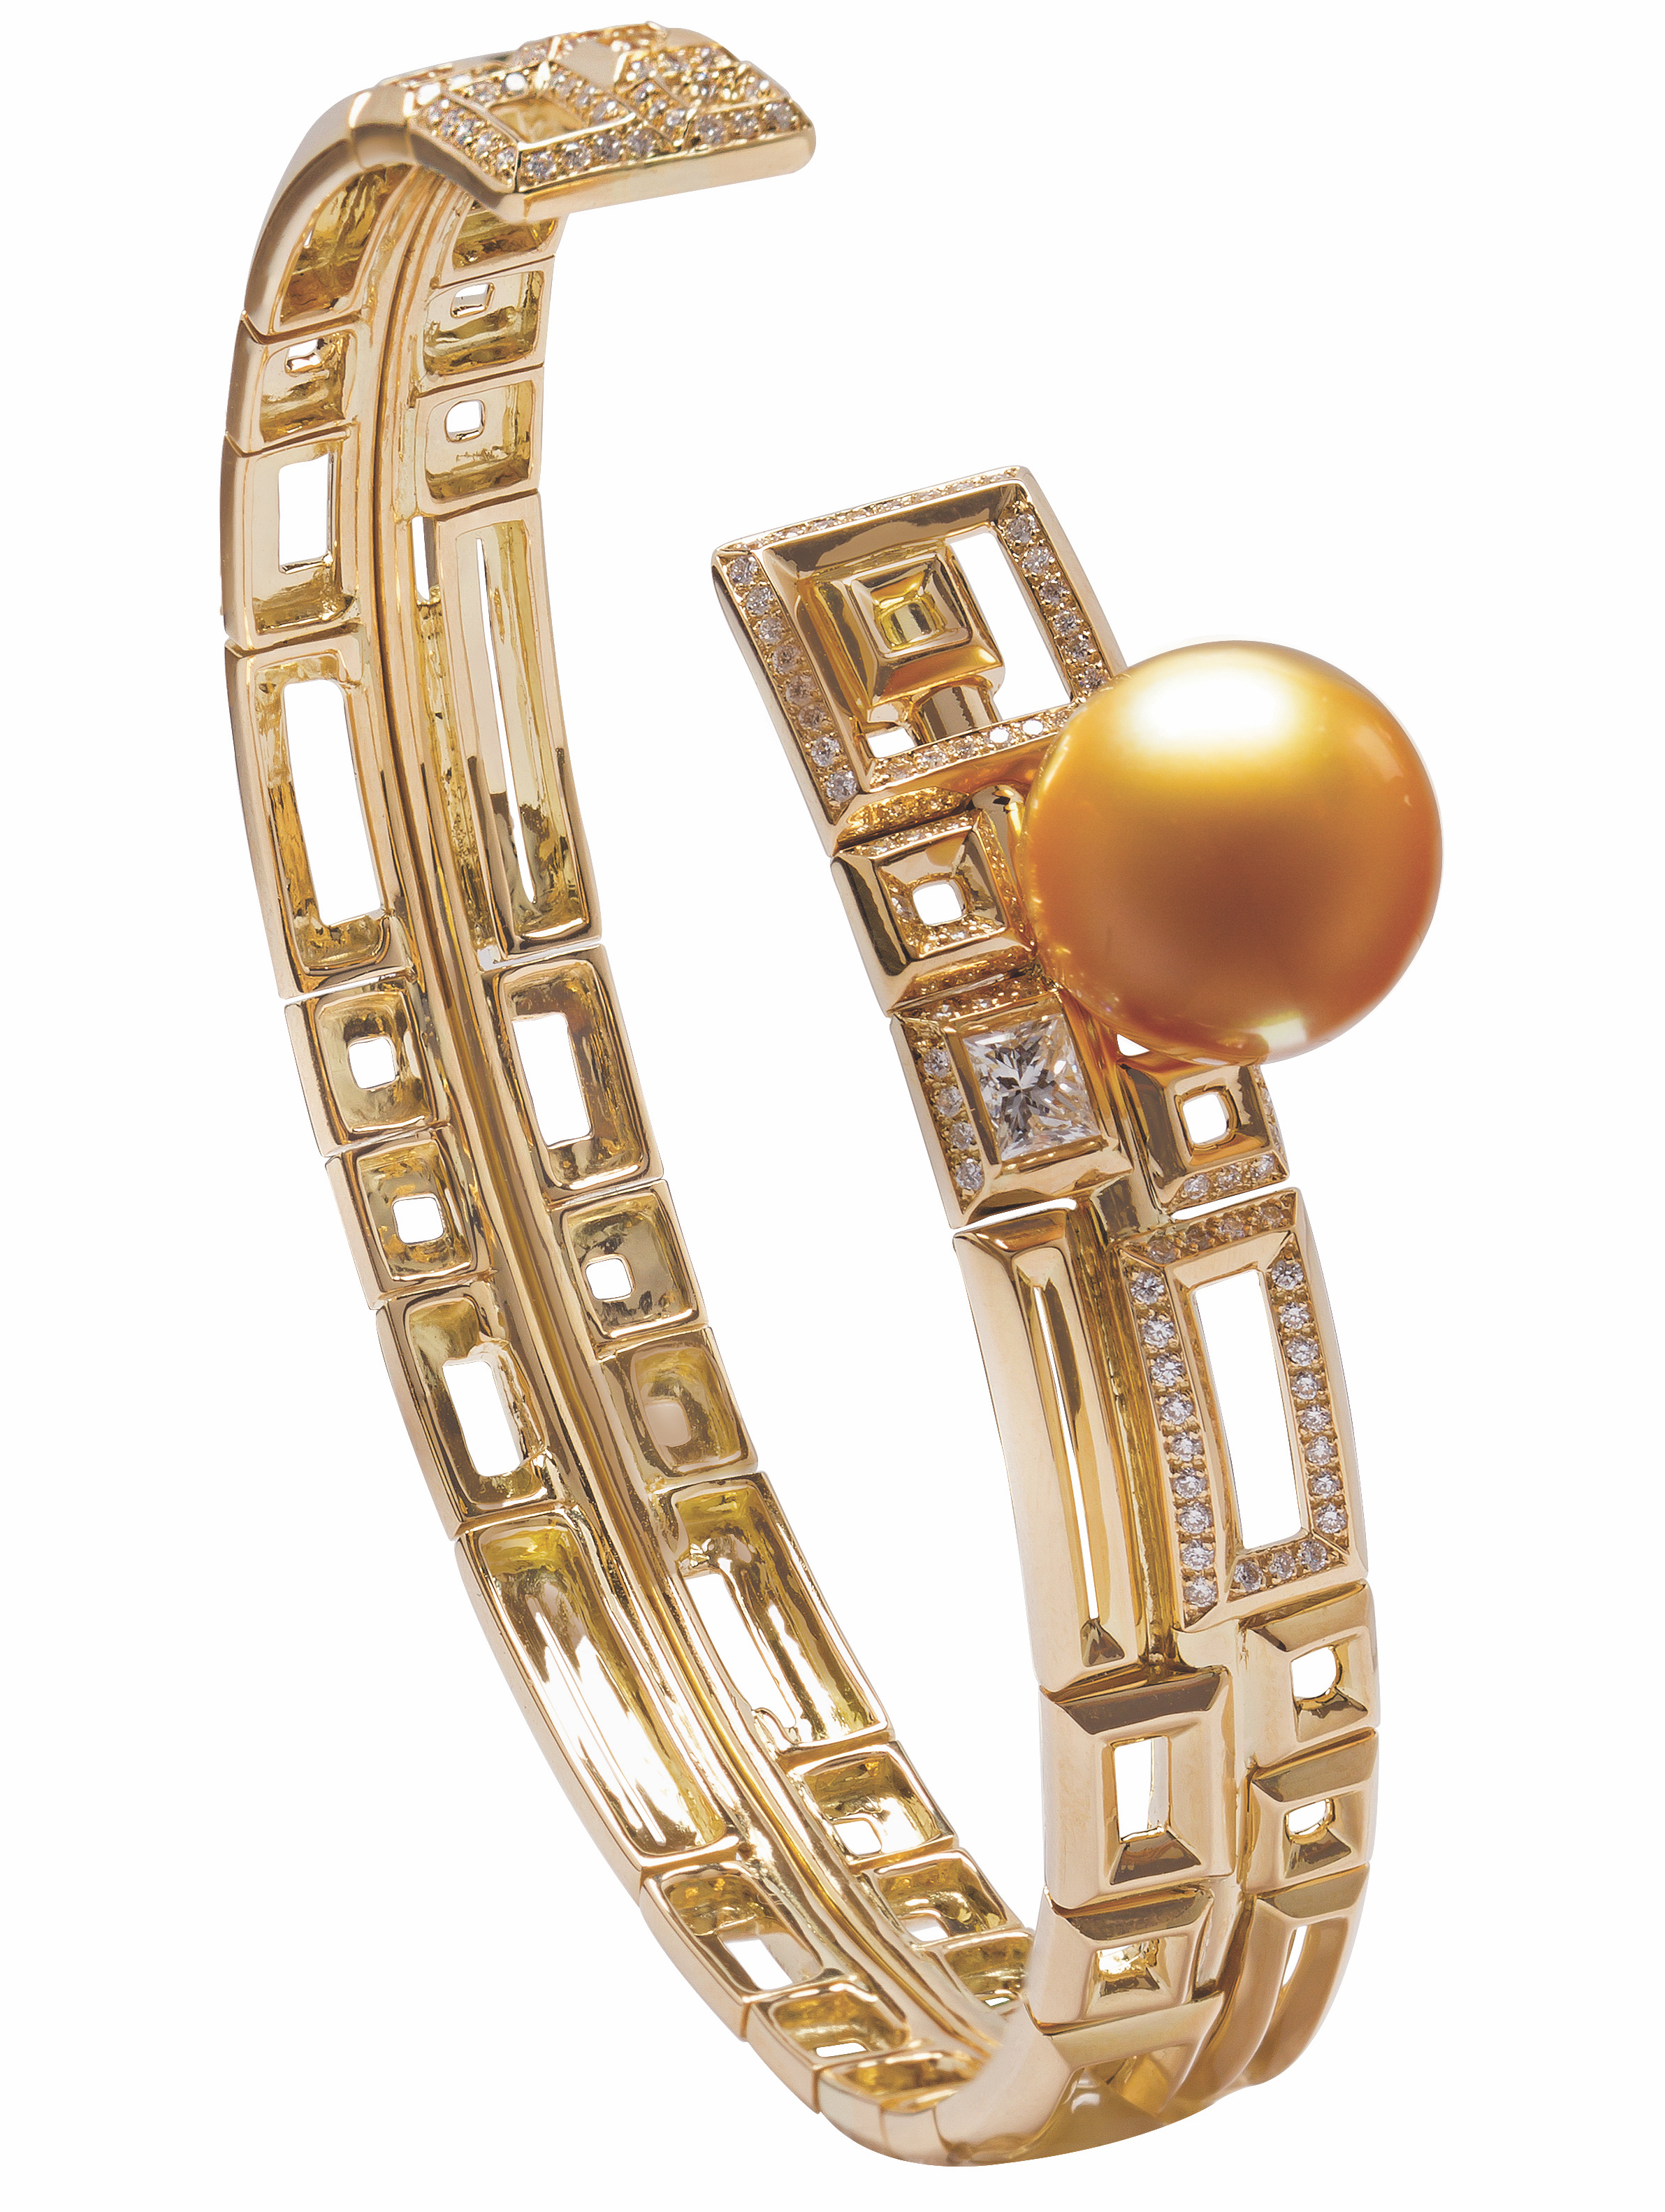 Jewelmer Louvre bracelet | JCK On Your Market